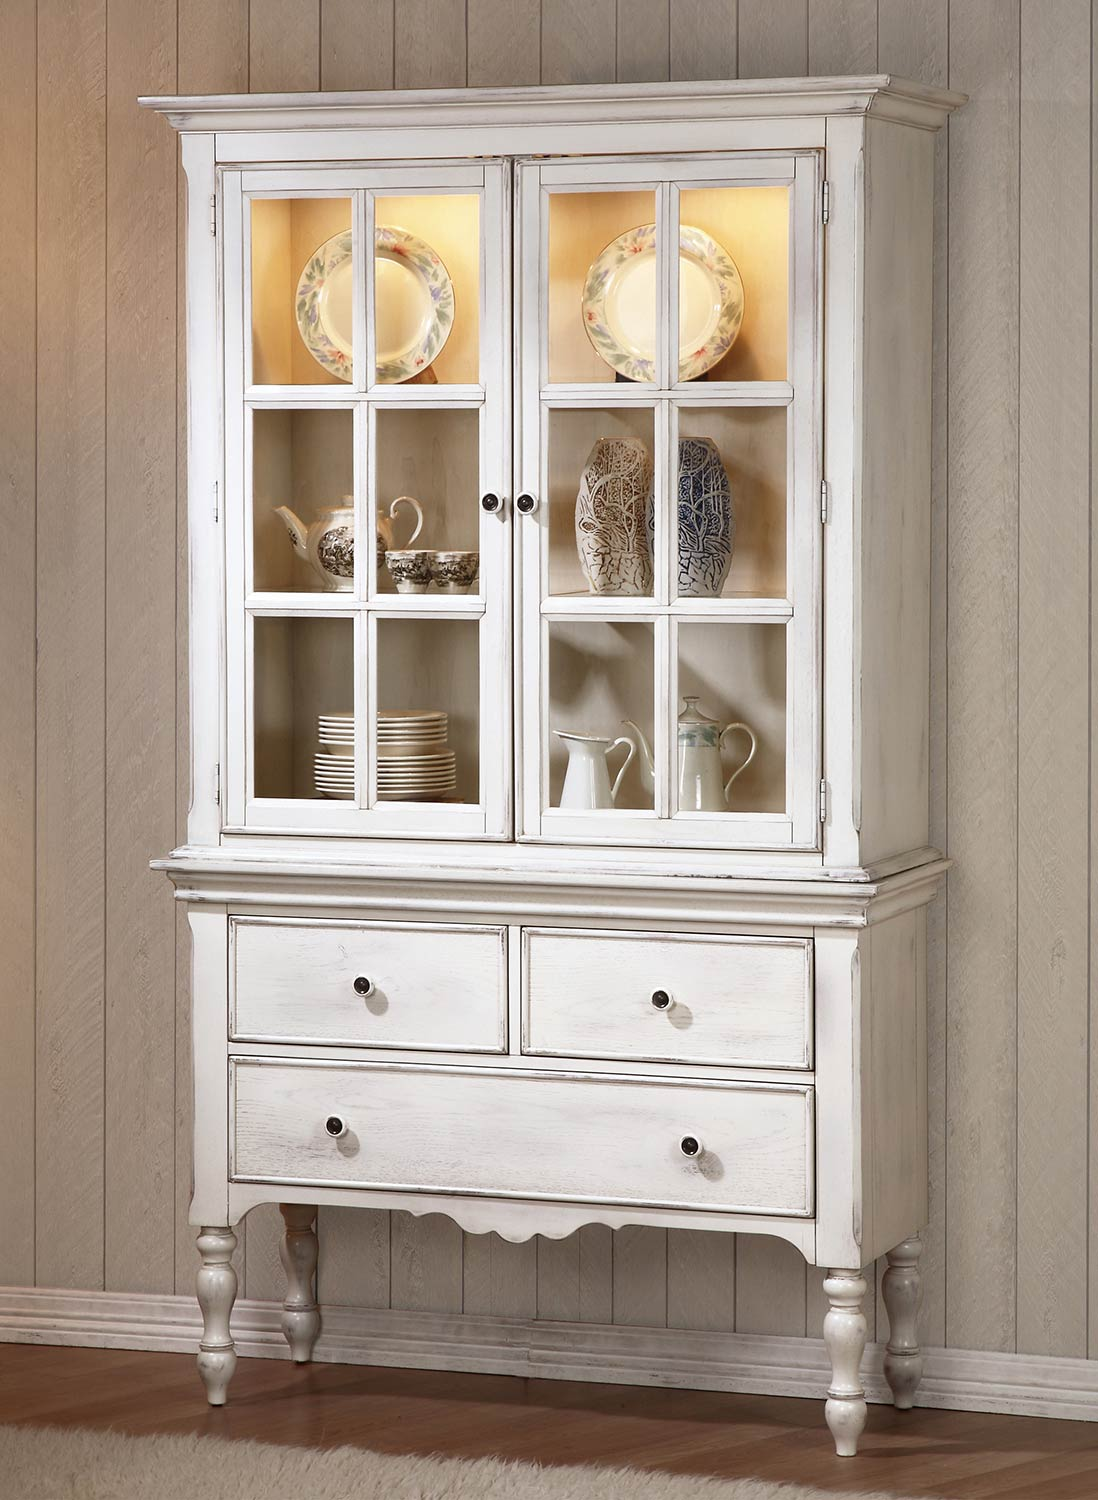 Homelegance Hollyhock China Cabinet  Distressed WhiteOak 51235055 at Homelementcom